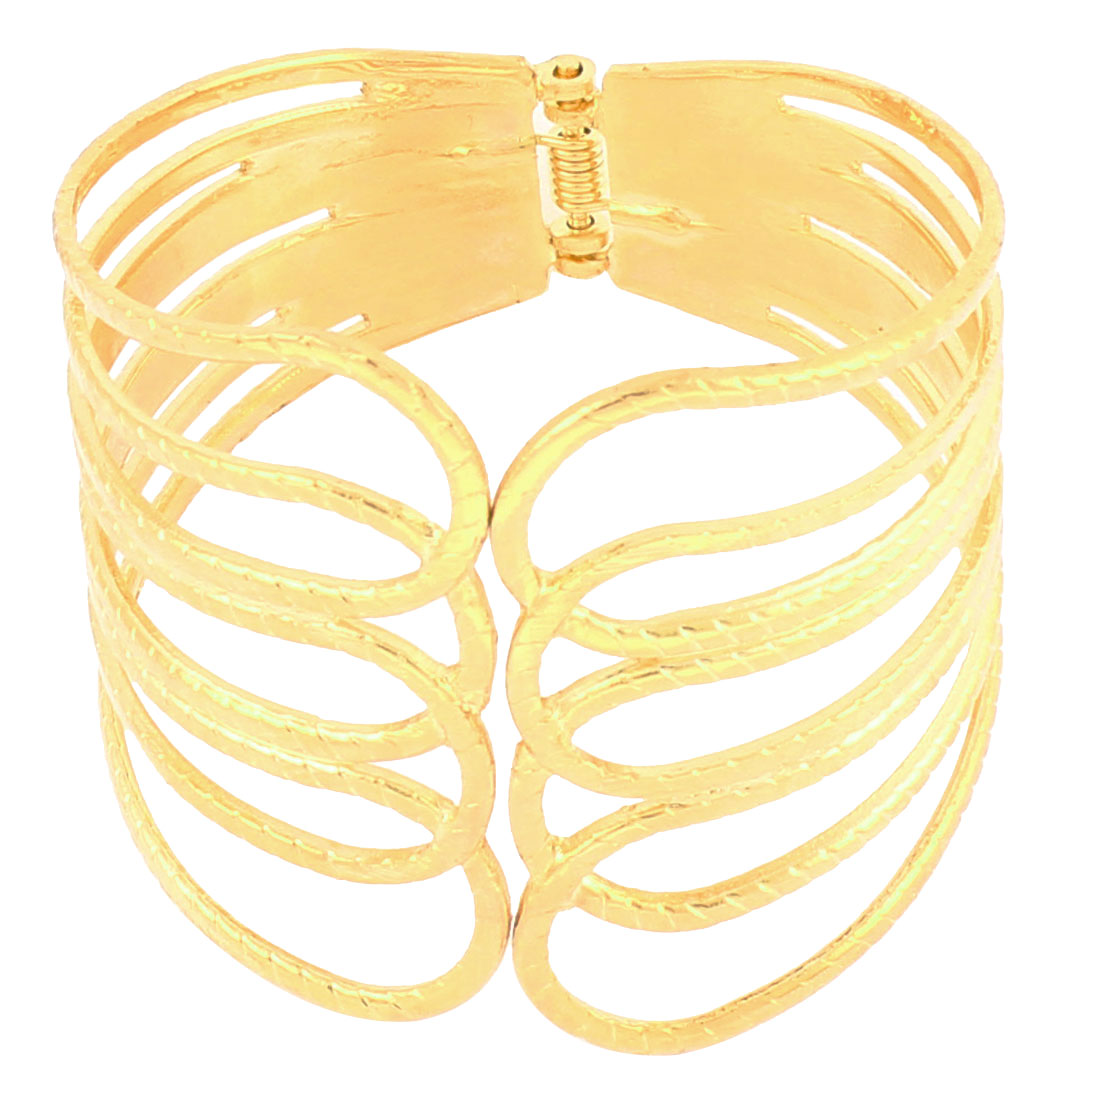 Women Multilayer Metal Rings Wrist Decor Cuff Bracelet Wide Bangle Gold Tone